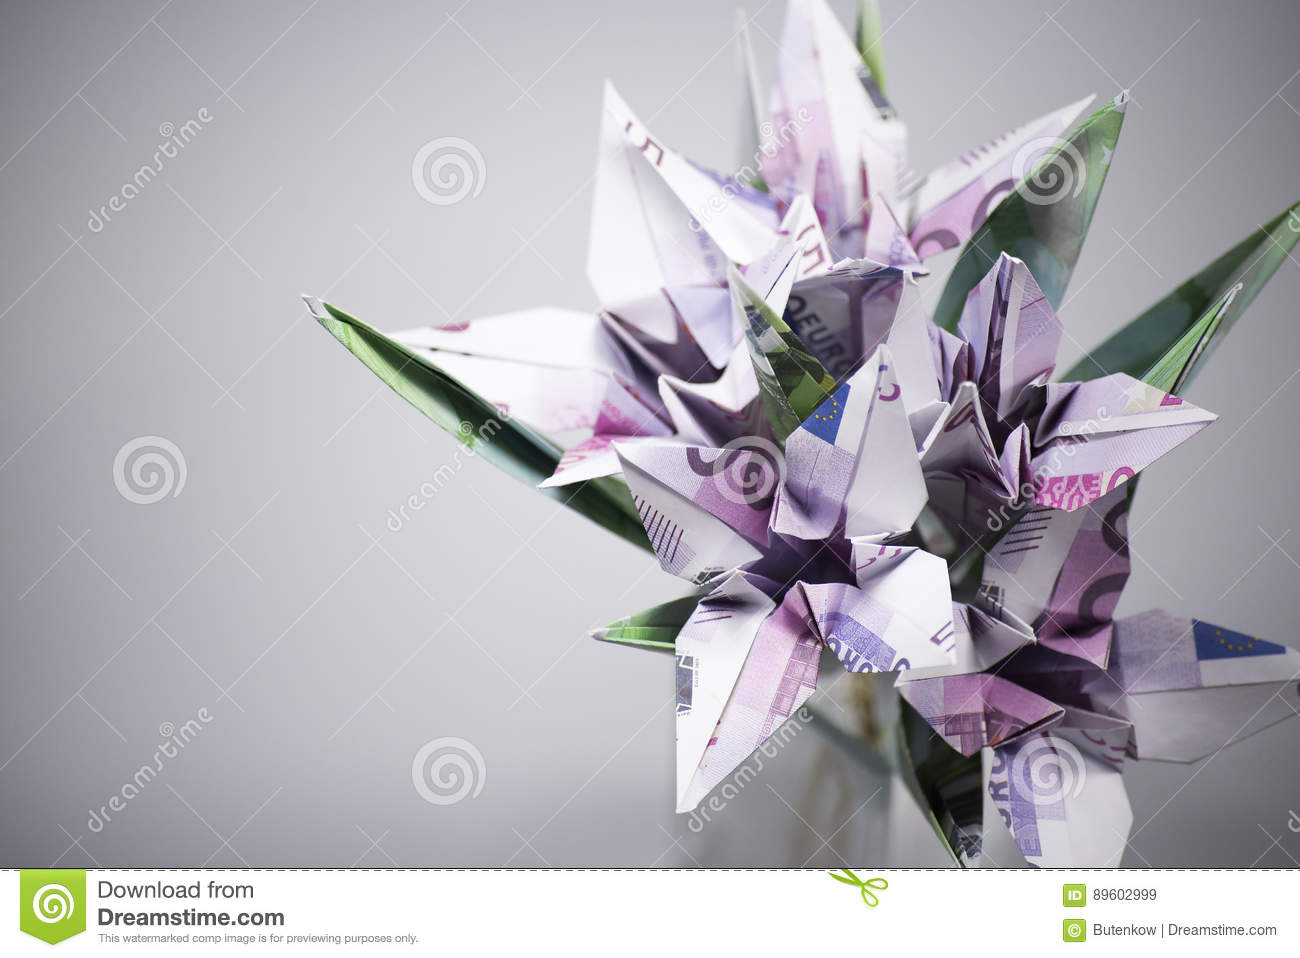 Flowers Origami Banknotes Stock Image Image Of Background 89602999